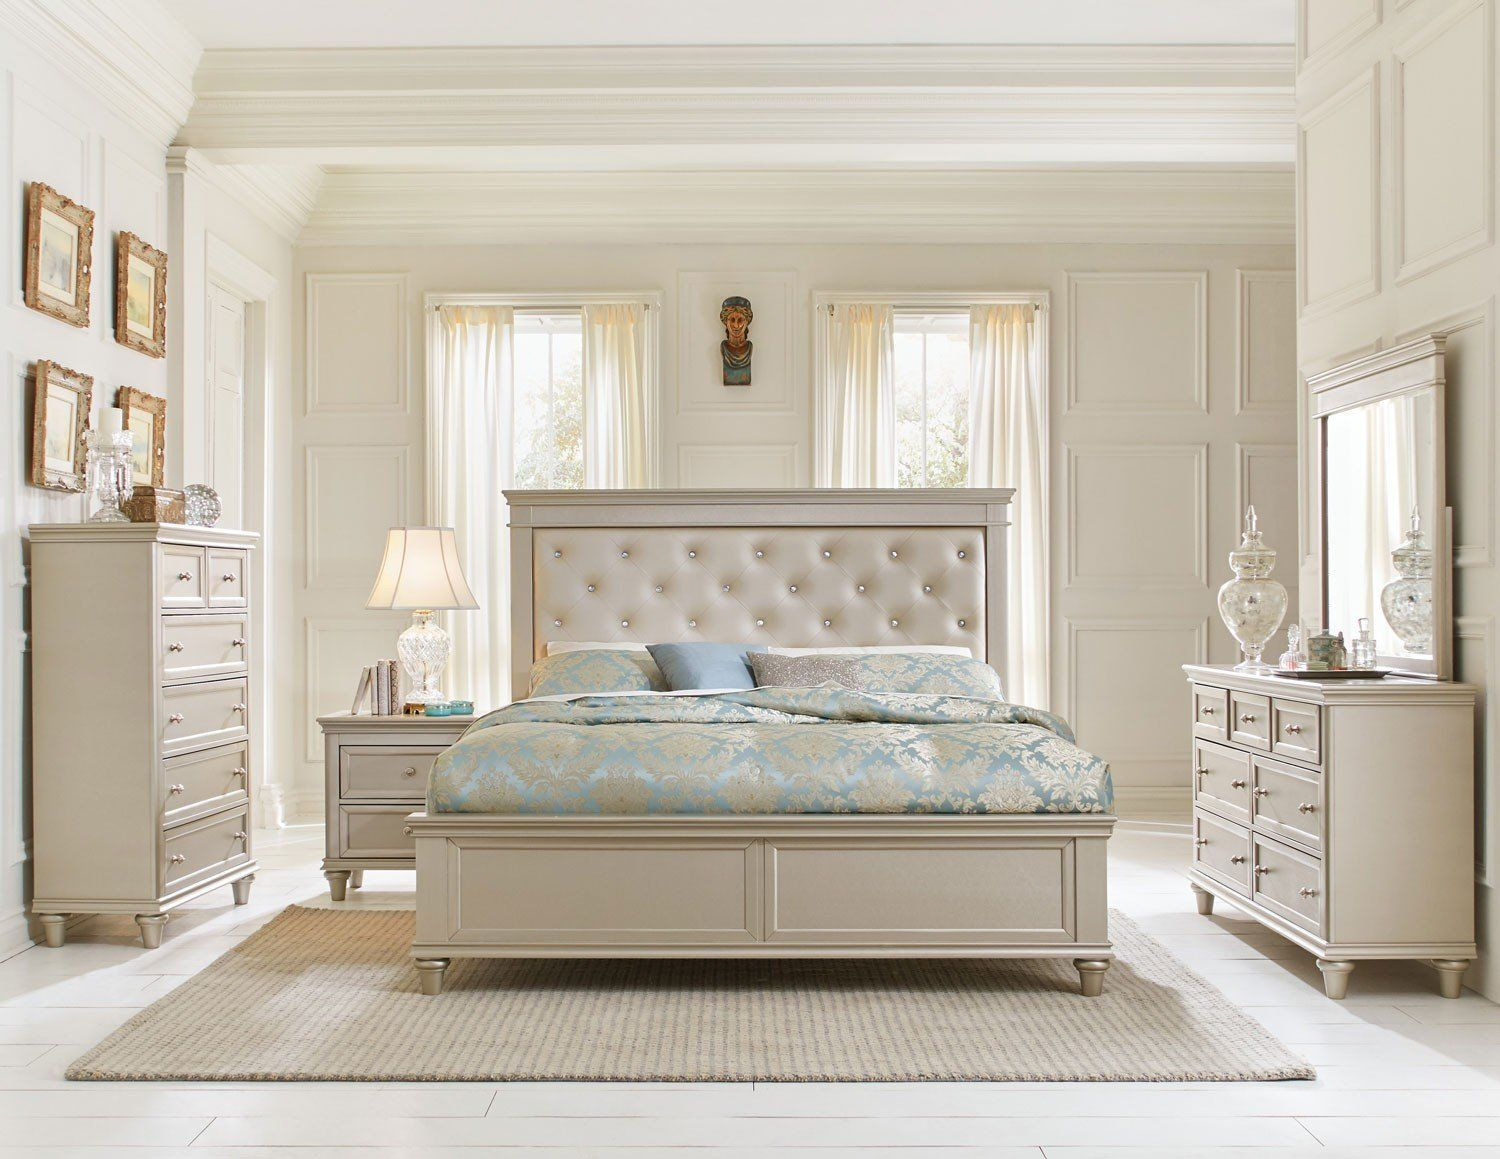 white king bedroom sets. 1928-1 Traditional 4P Silver Wood Queen Bedroom Set Tufted Pearl Vinyl White King Sets